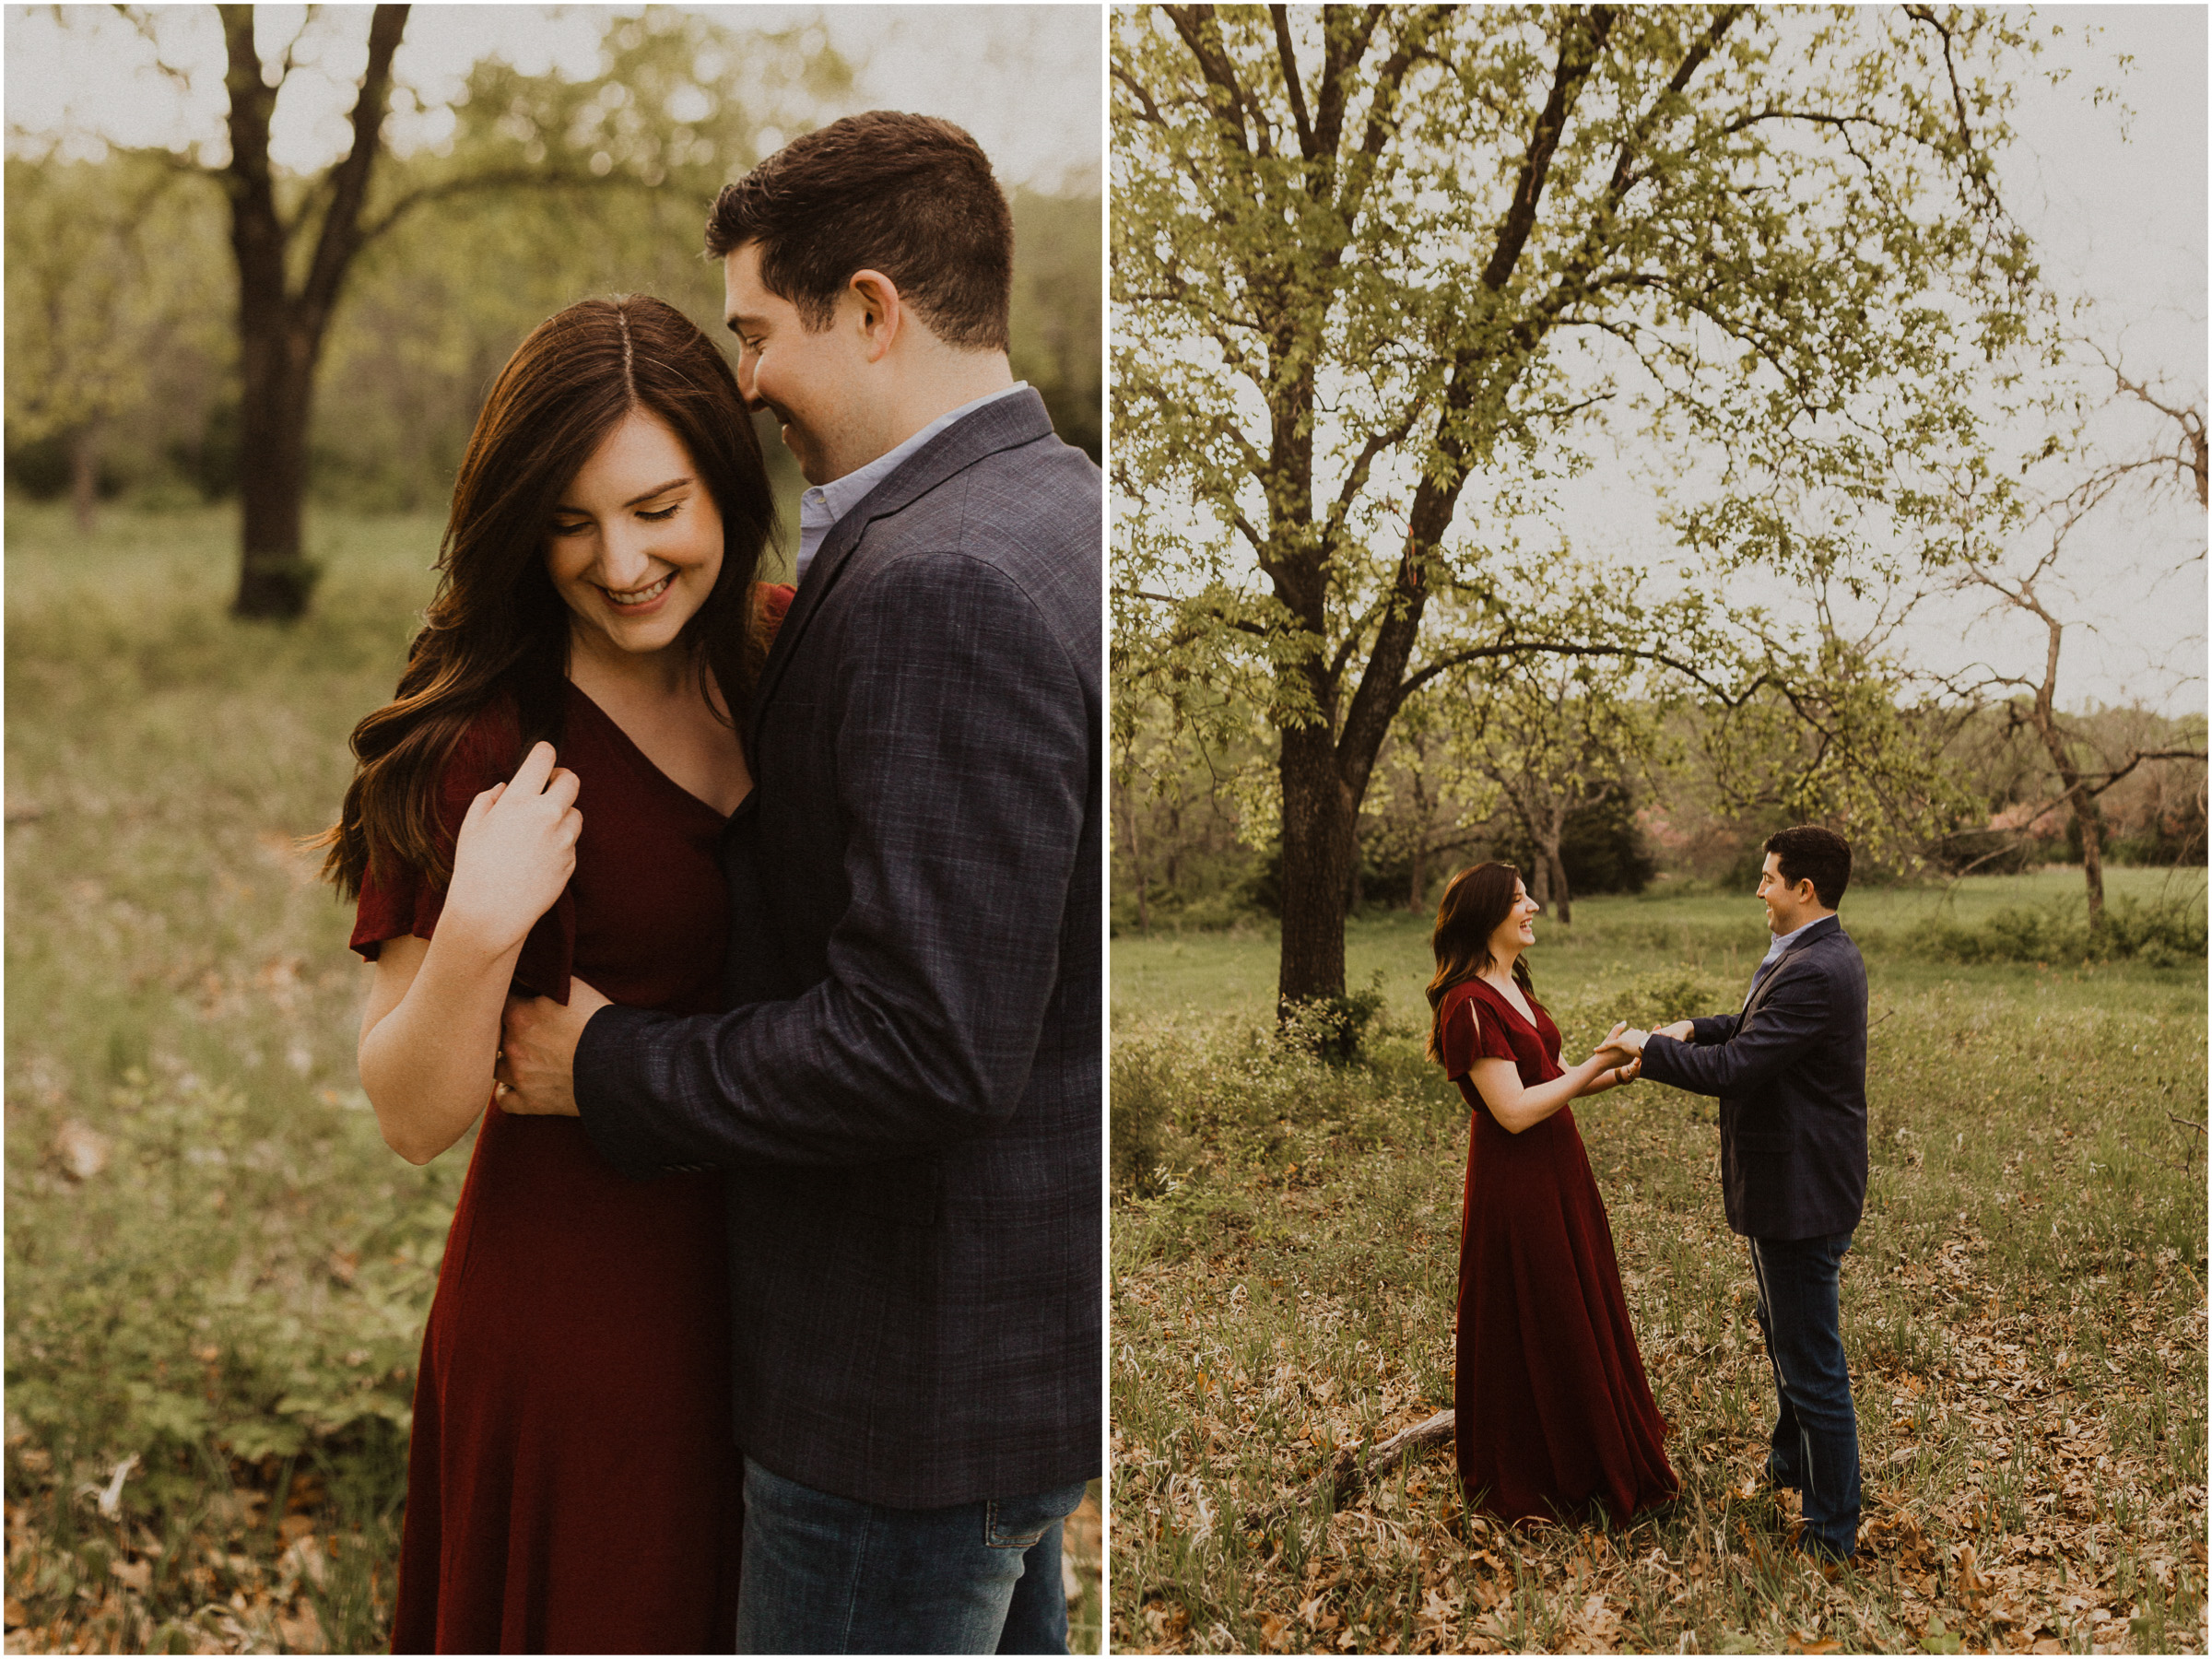 alyssa barletter photography shawnee mission park engagement session photographer spring fields-3.jpg